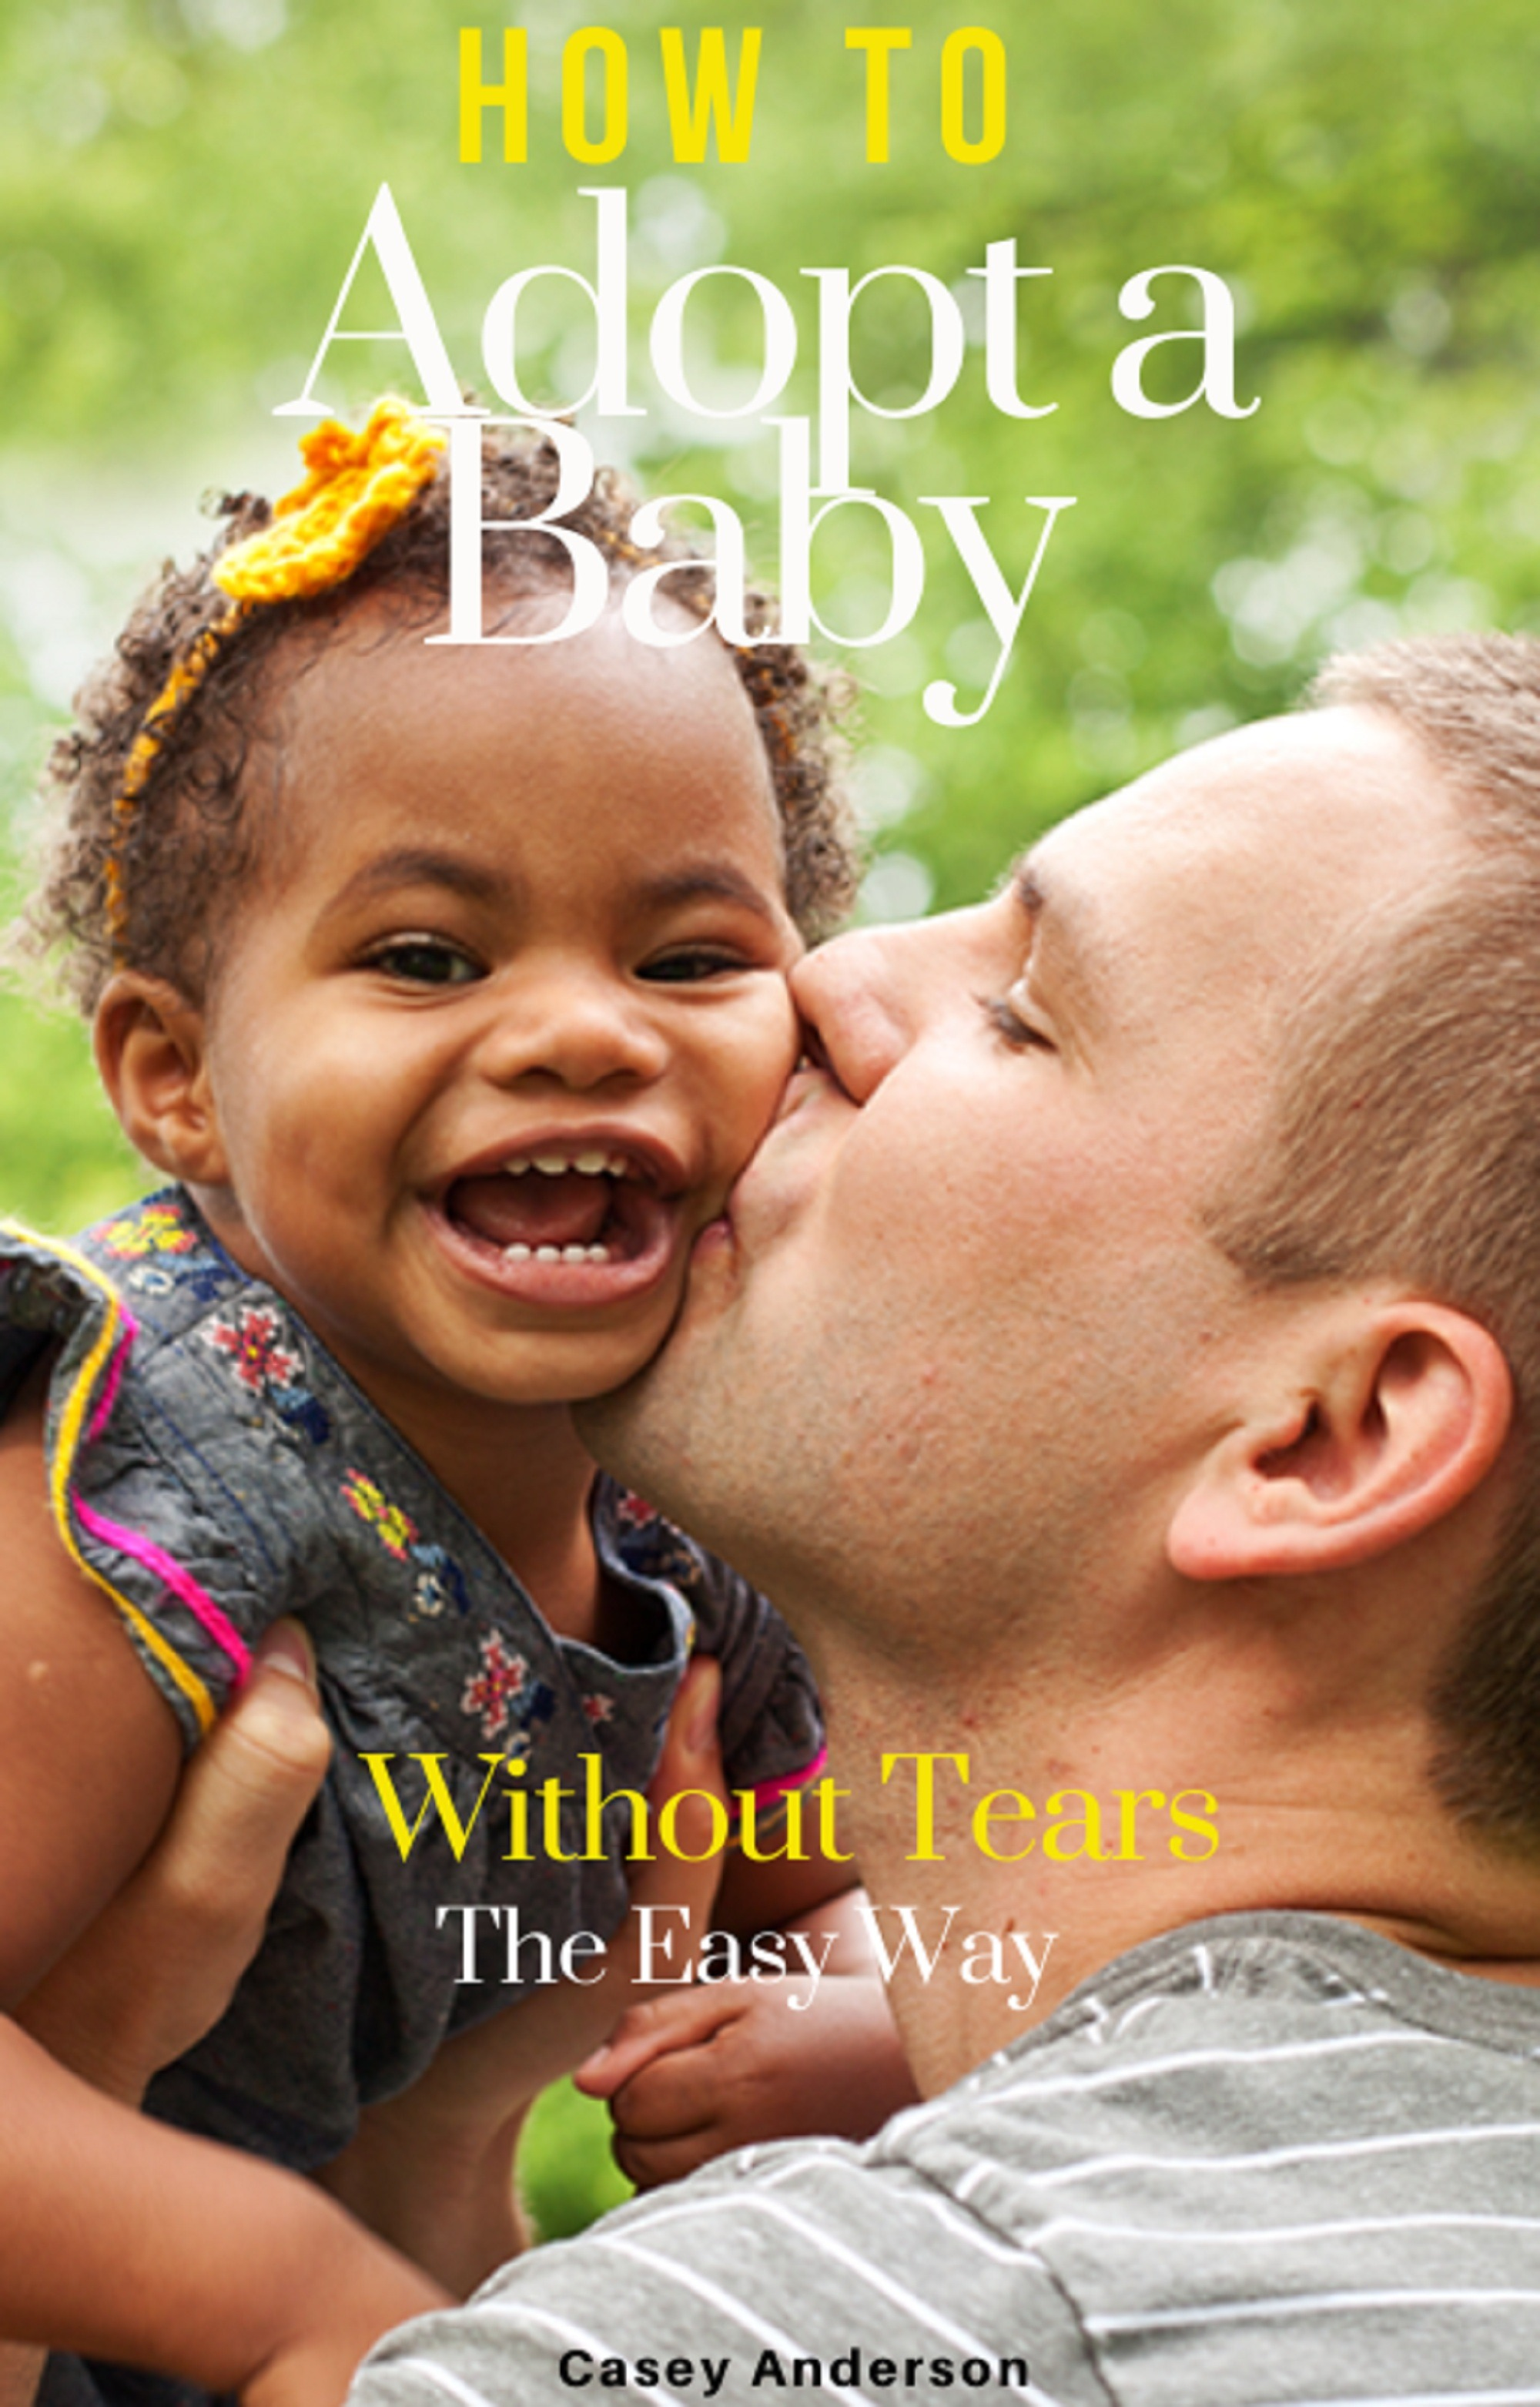 How To Adopt a Baby Without Tears: The Easy Way